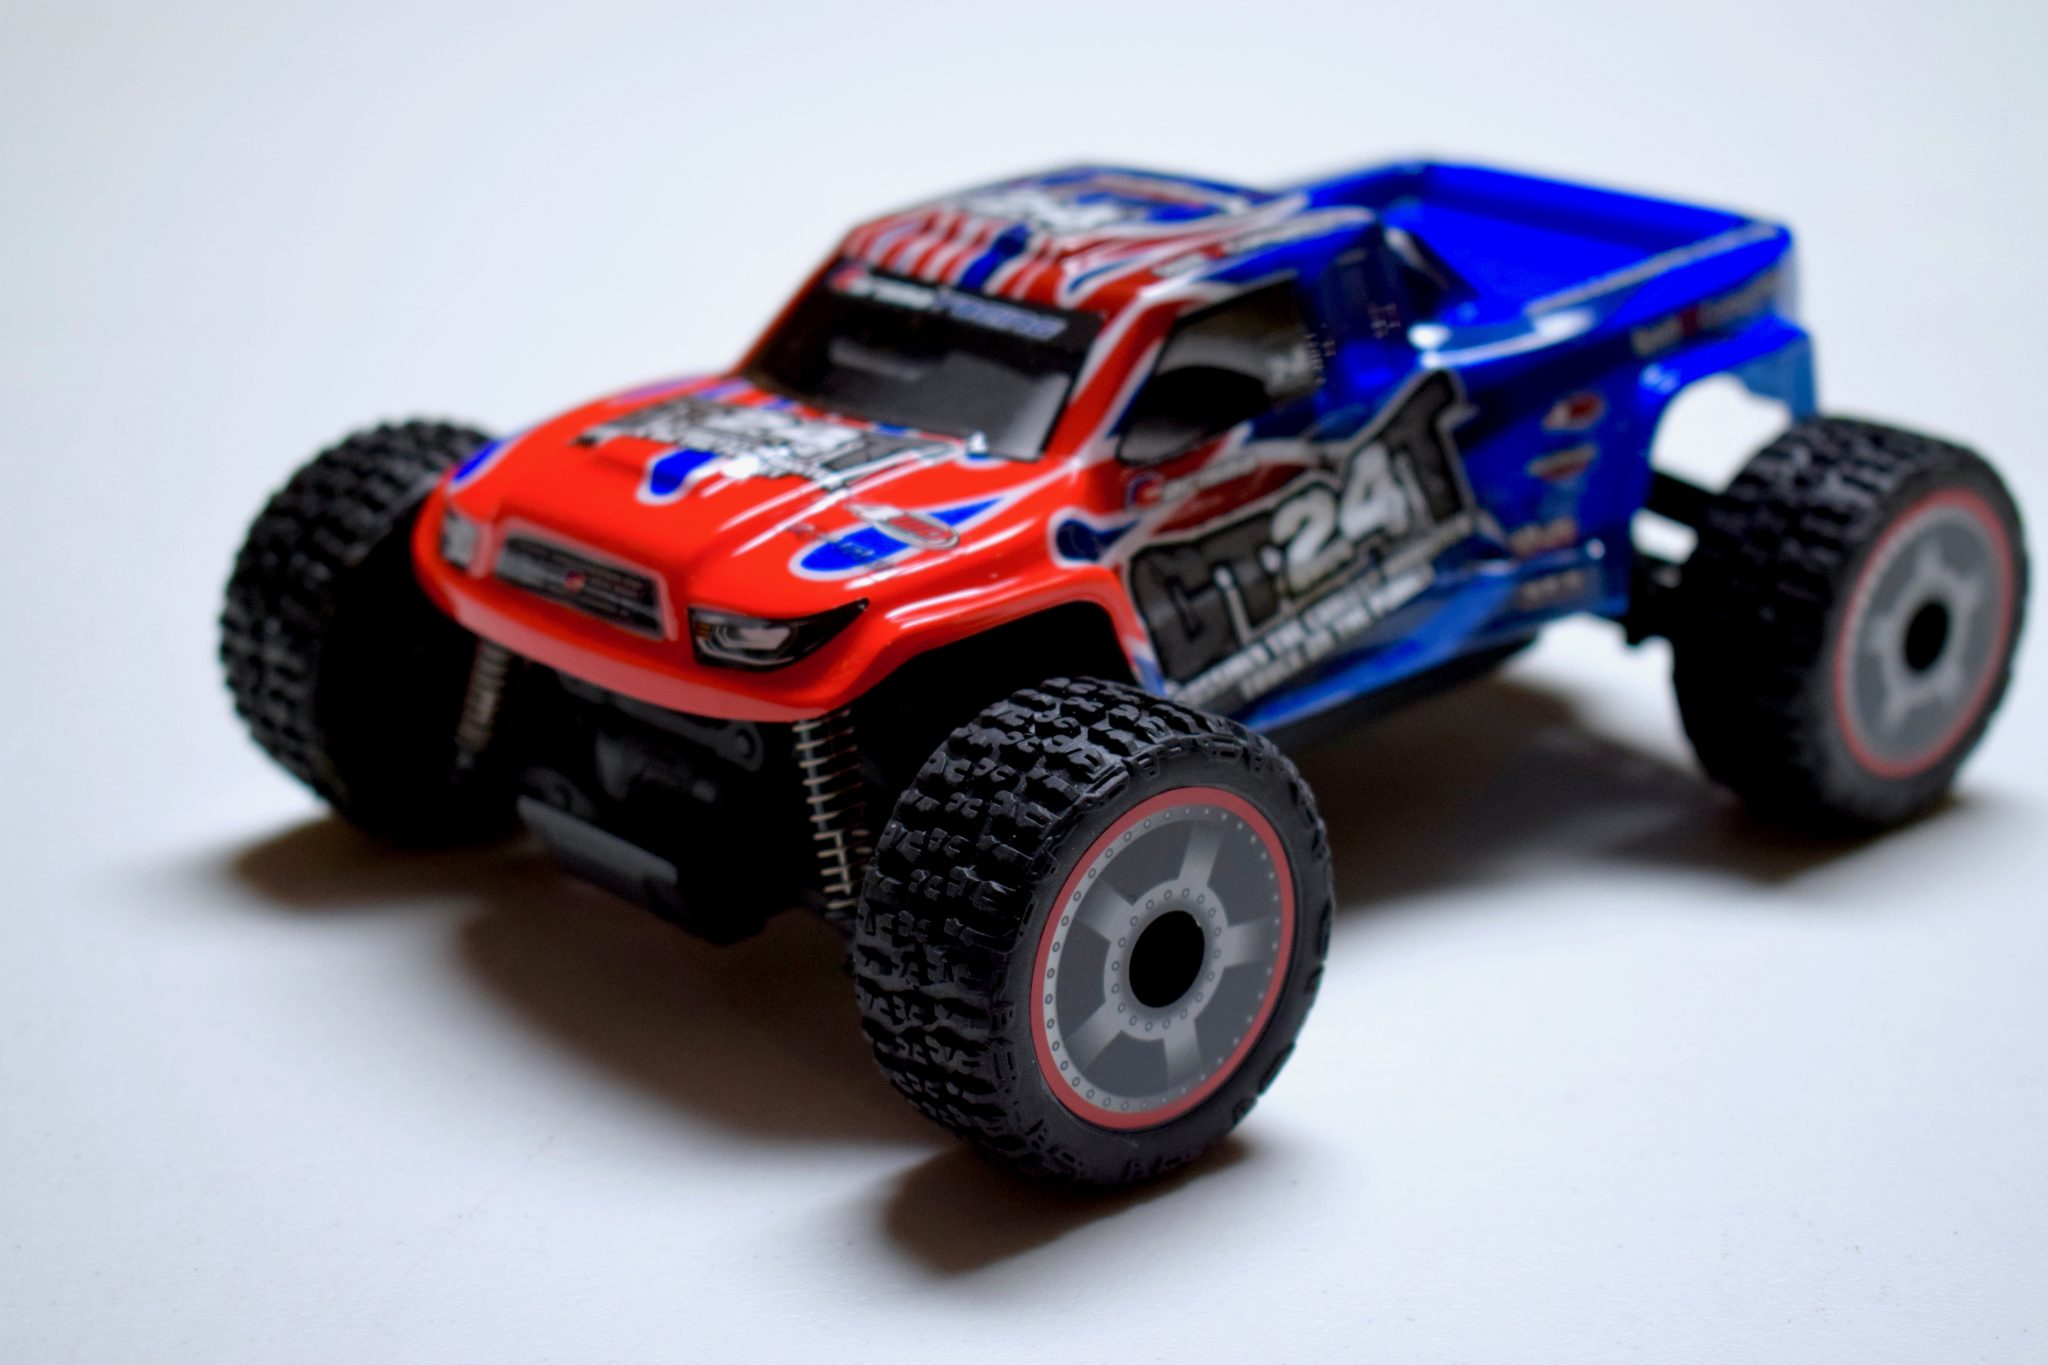 Review: Carisma GT24T R/C Monster Truck